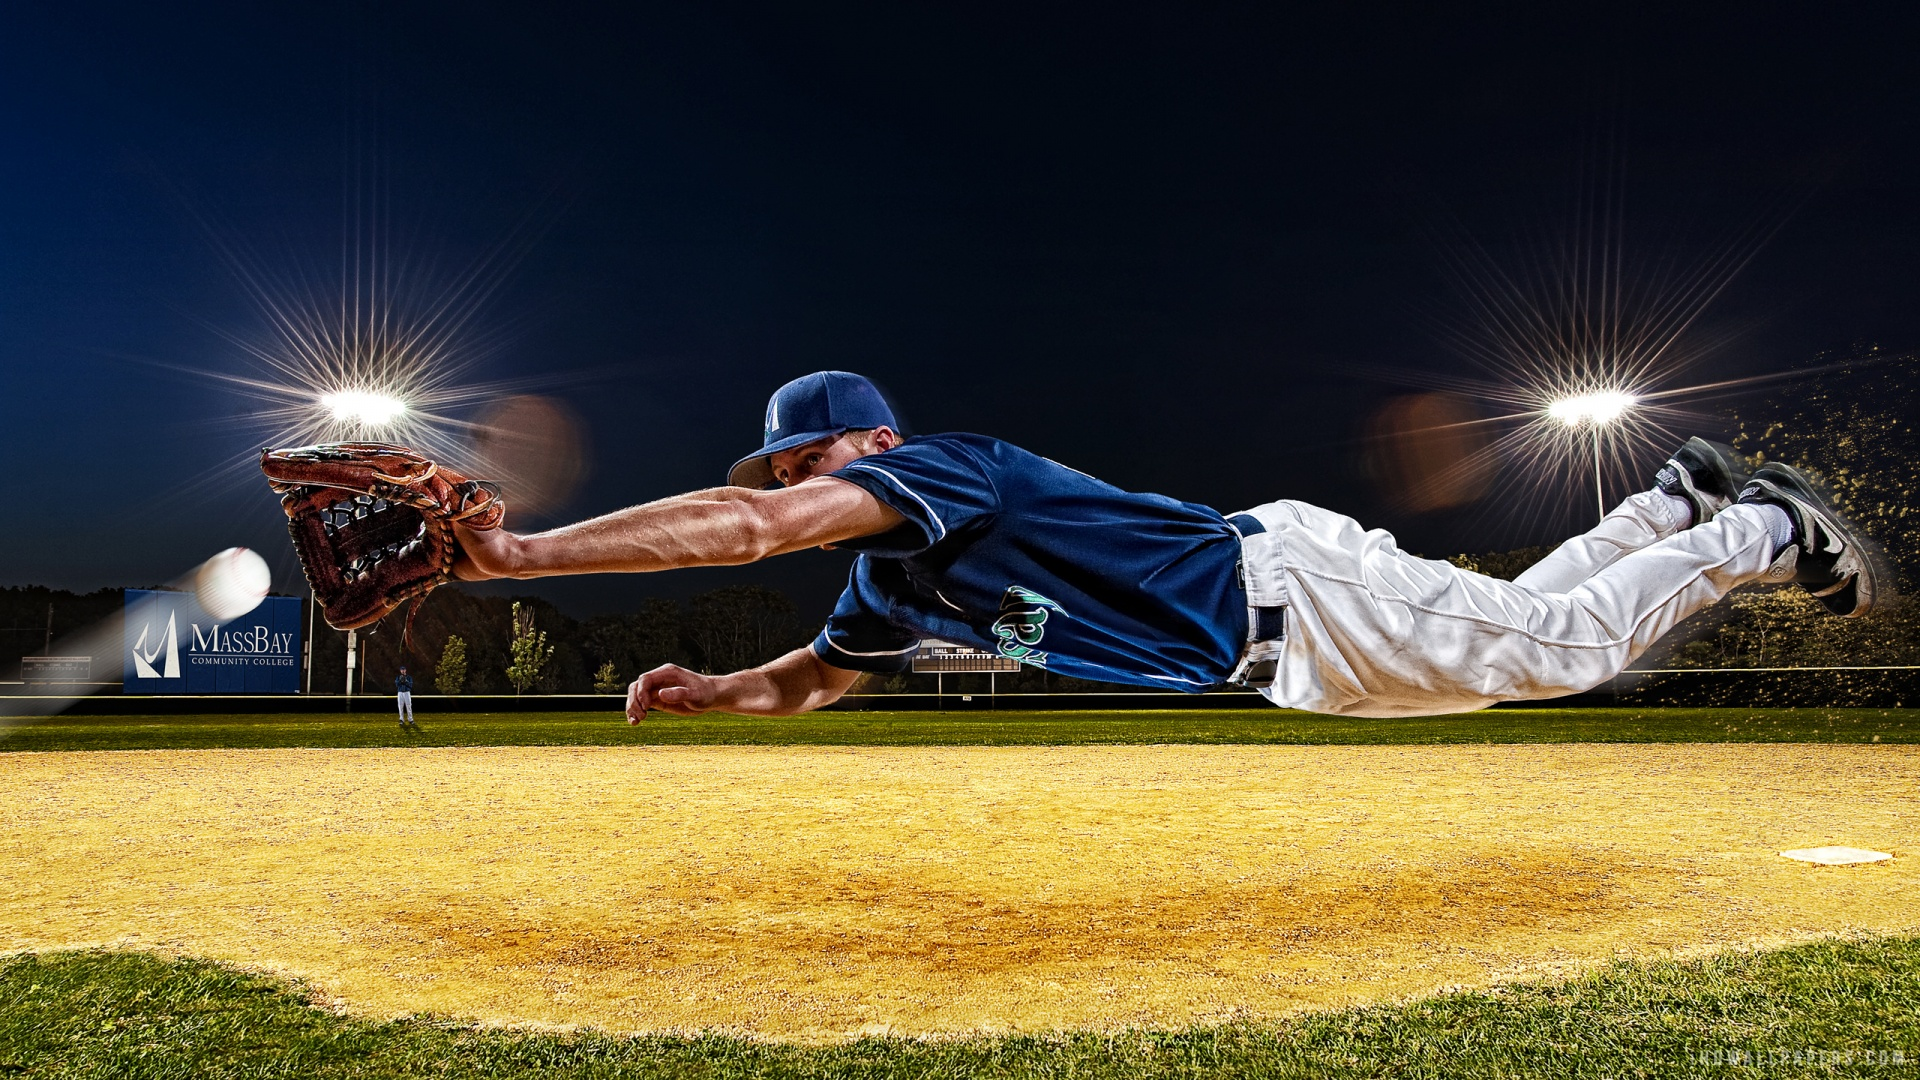 Baseball-Collection-For-Free-Download-wallpaper-wp3602973